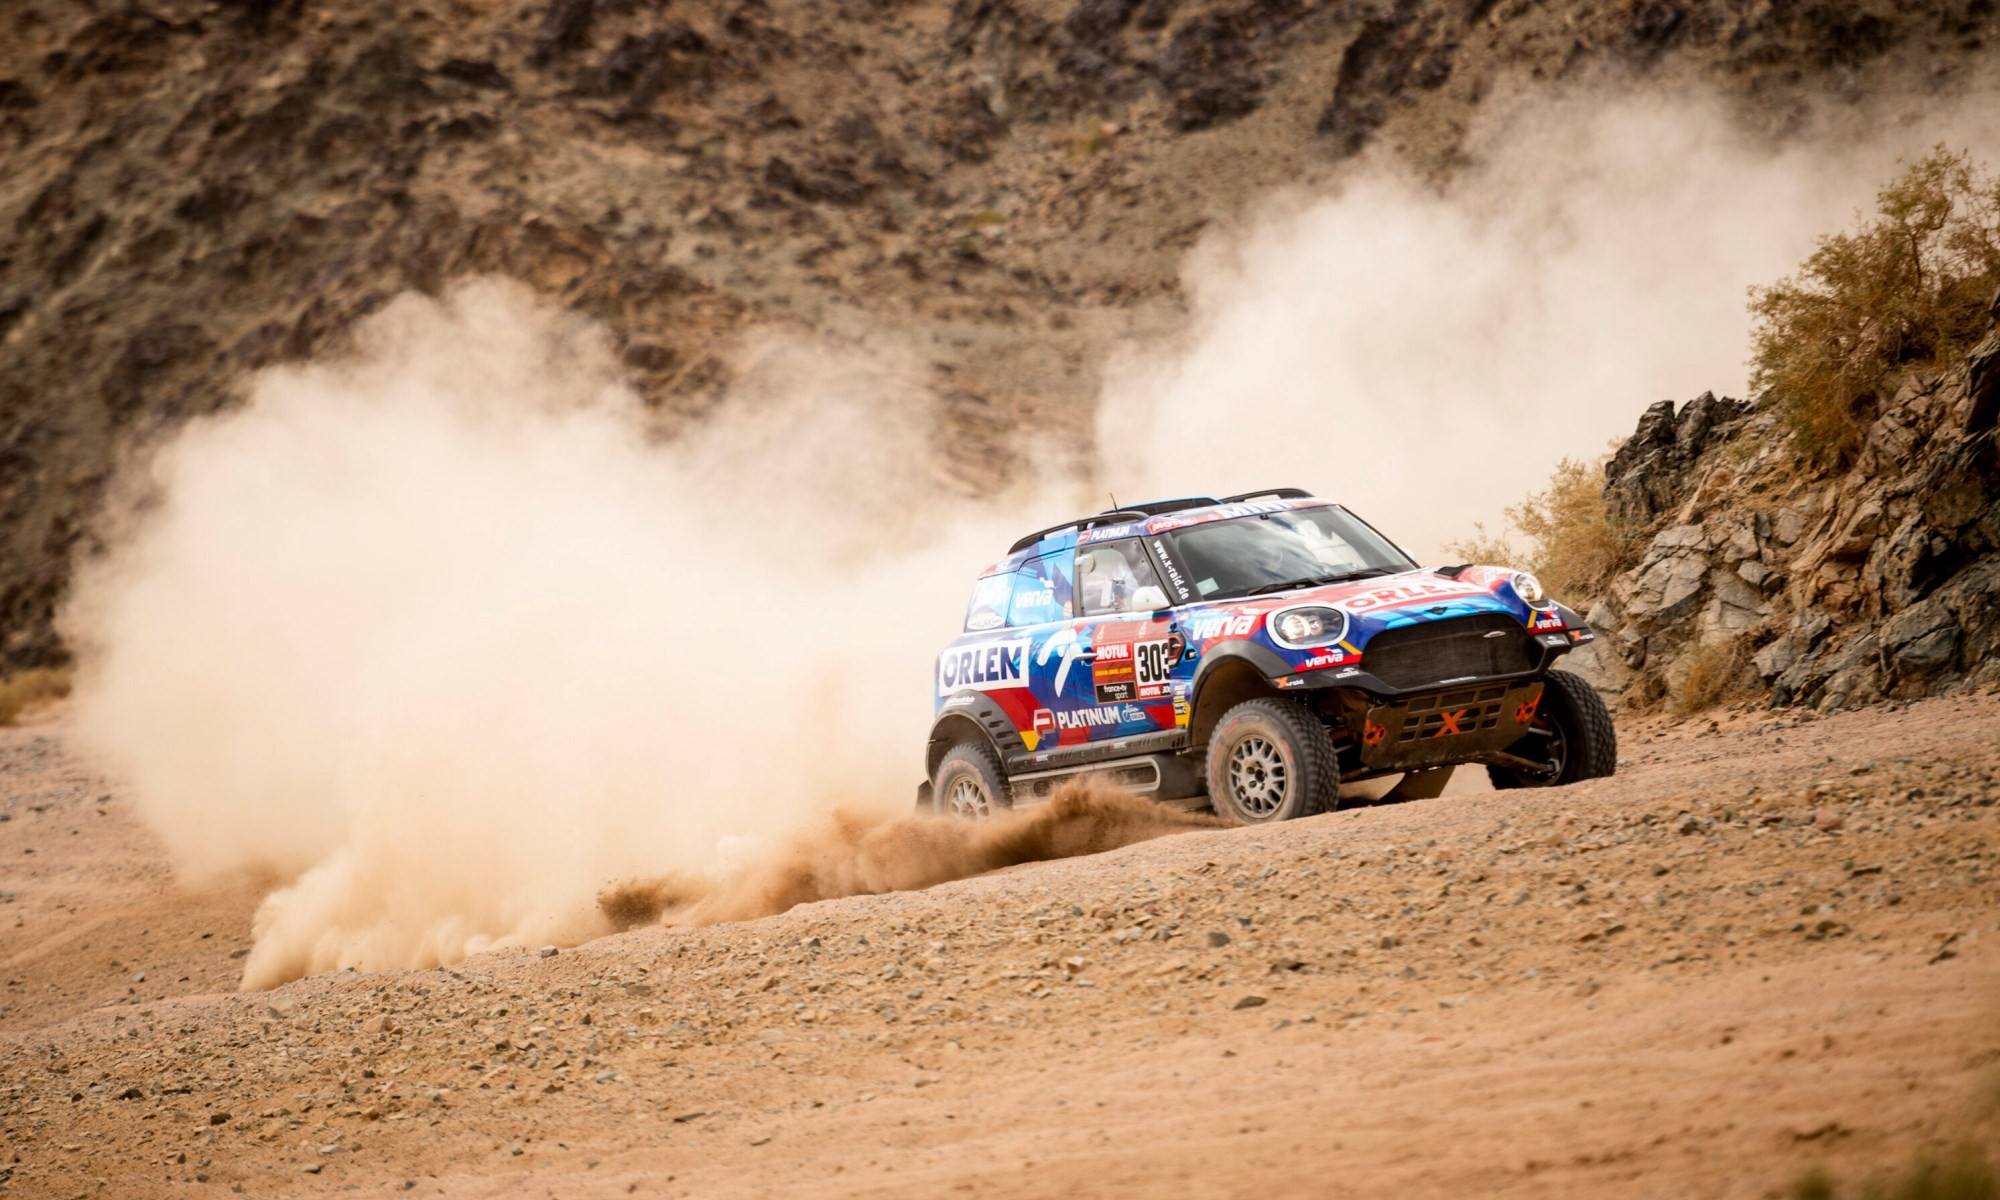 Jakub Przygonski had mechanical problems with his Mini that cost him one and a half hours.